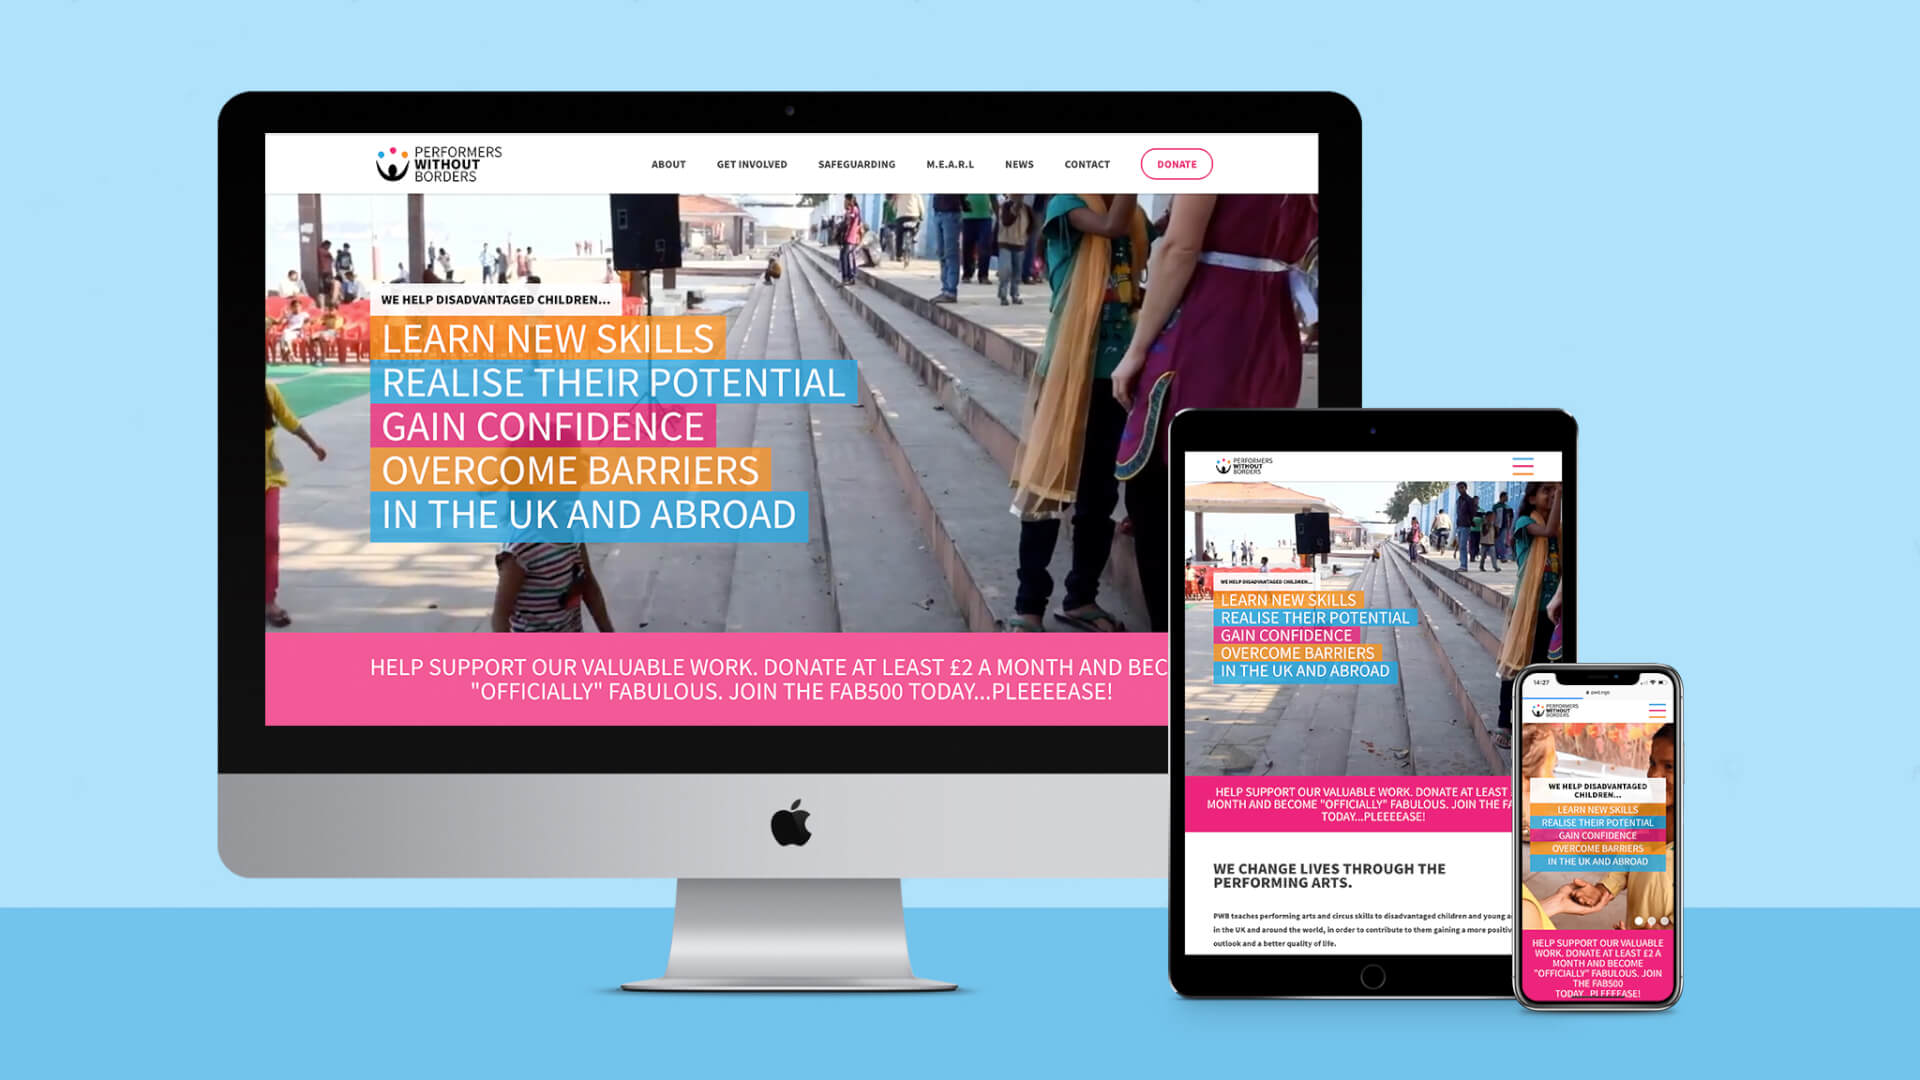 An image showing the home page of the new Performers Without Borders website on three devices: An Imac, an Ipad and an Iphone.